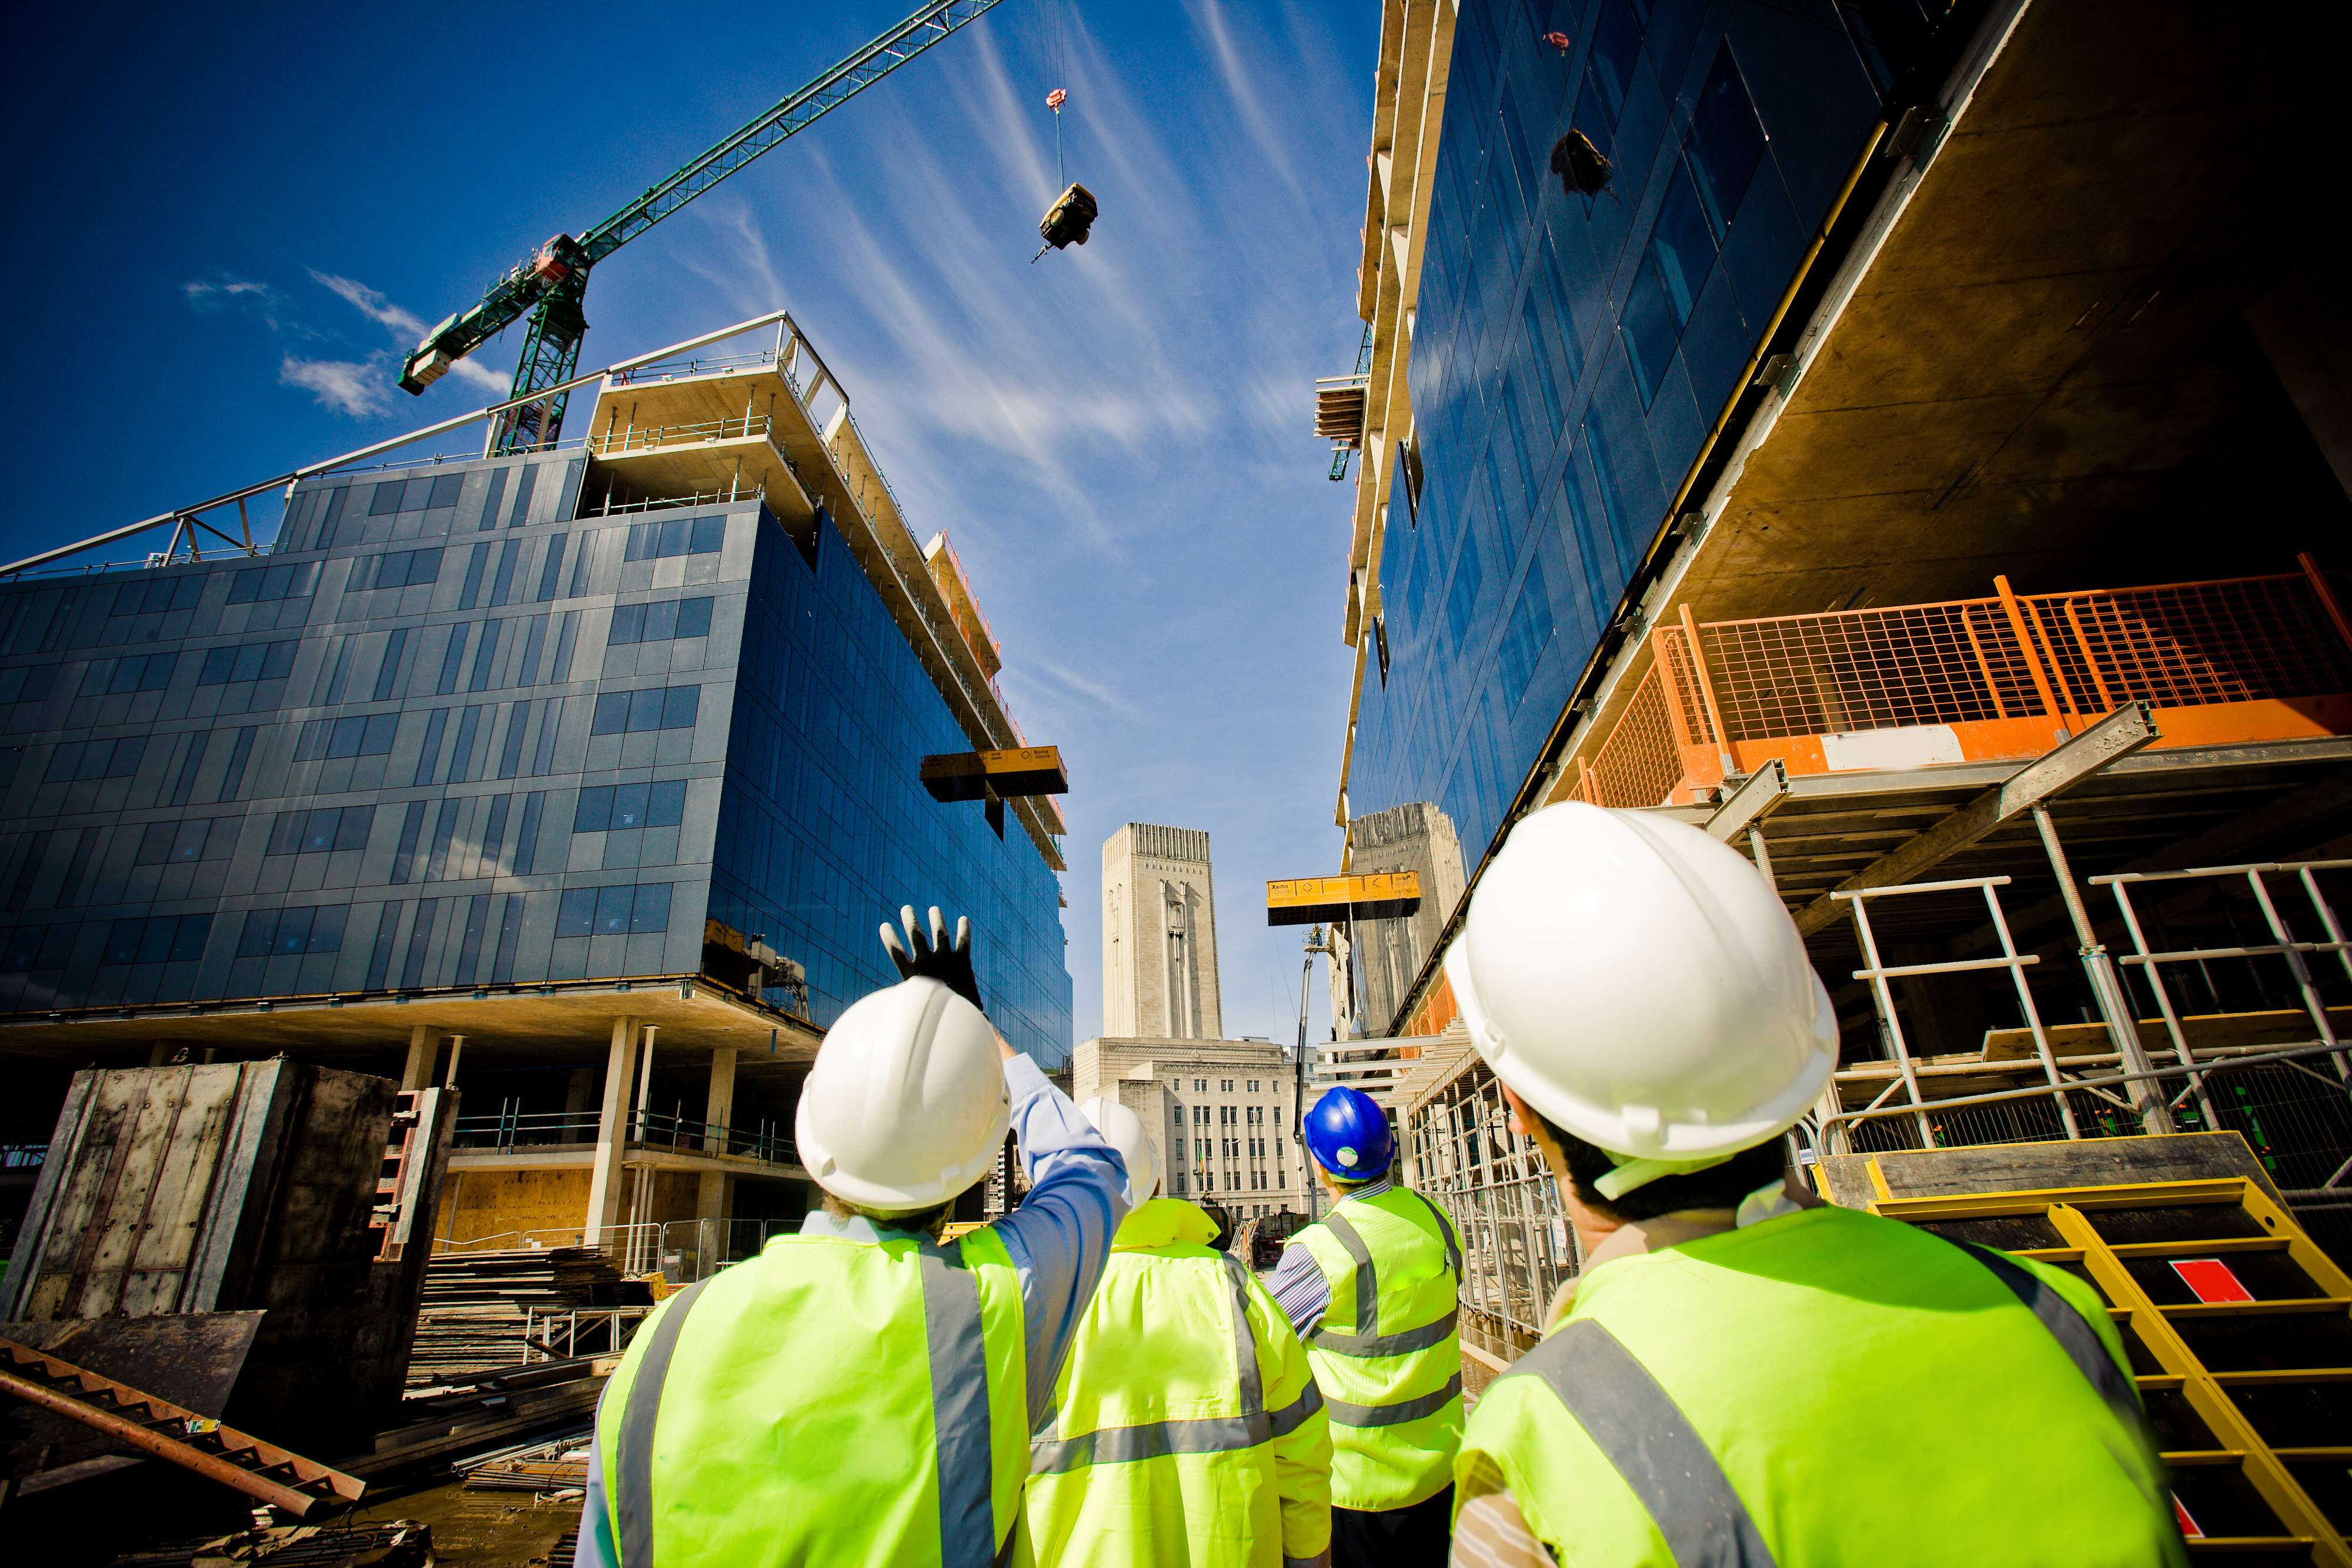 building-under-construction-with-workers-shutterstock_57862405